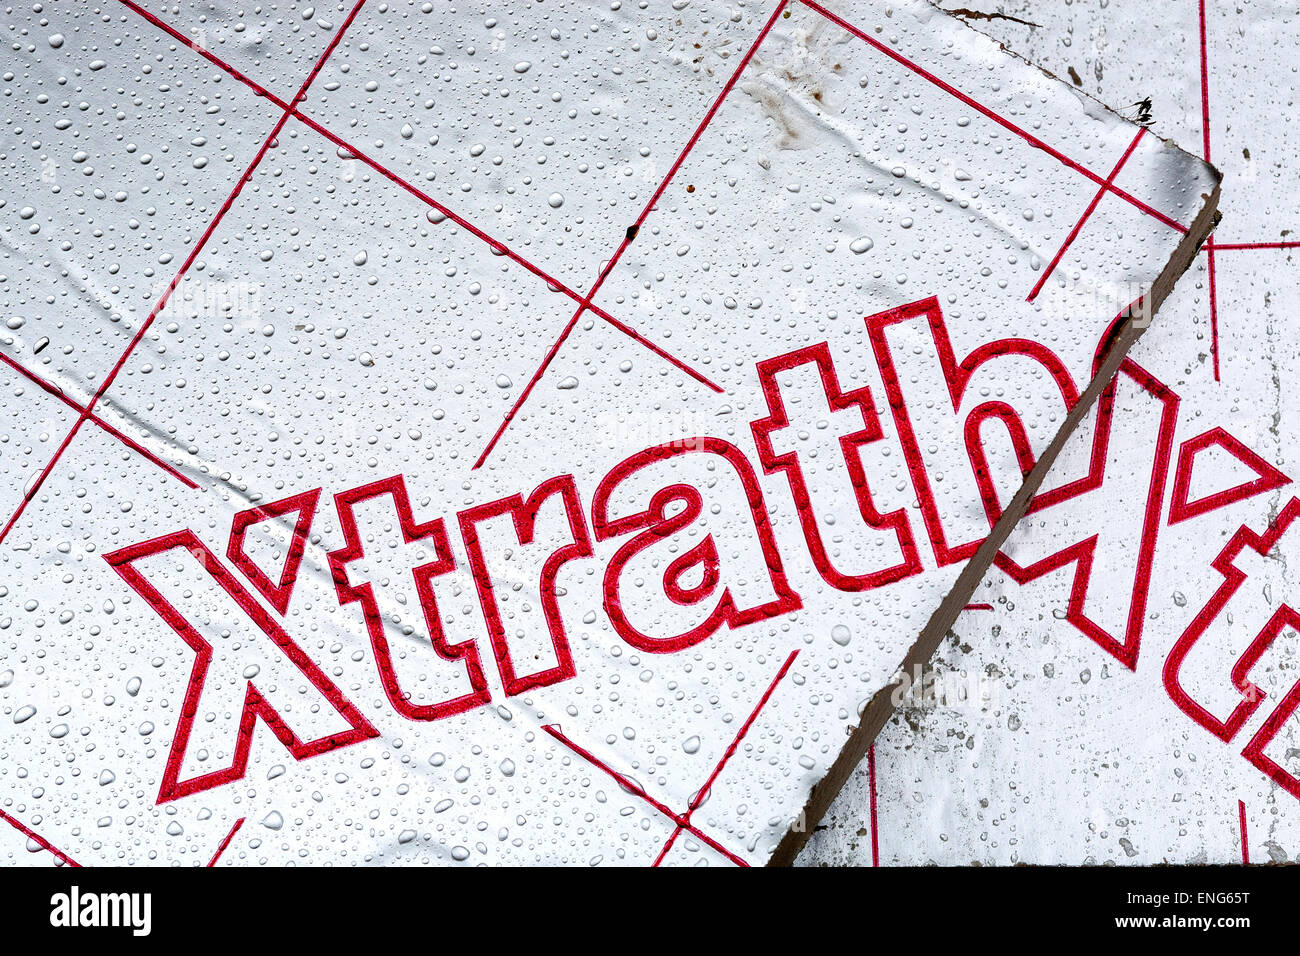 Xtratherm Insulation - More than insulation Xtratherm manufactures a wide range of high performance insulation boards, - Stock Image